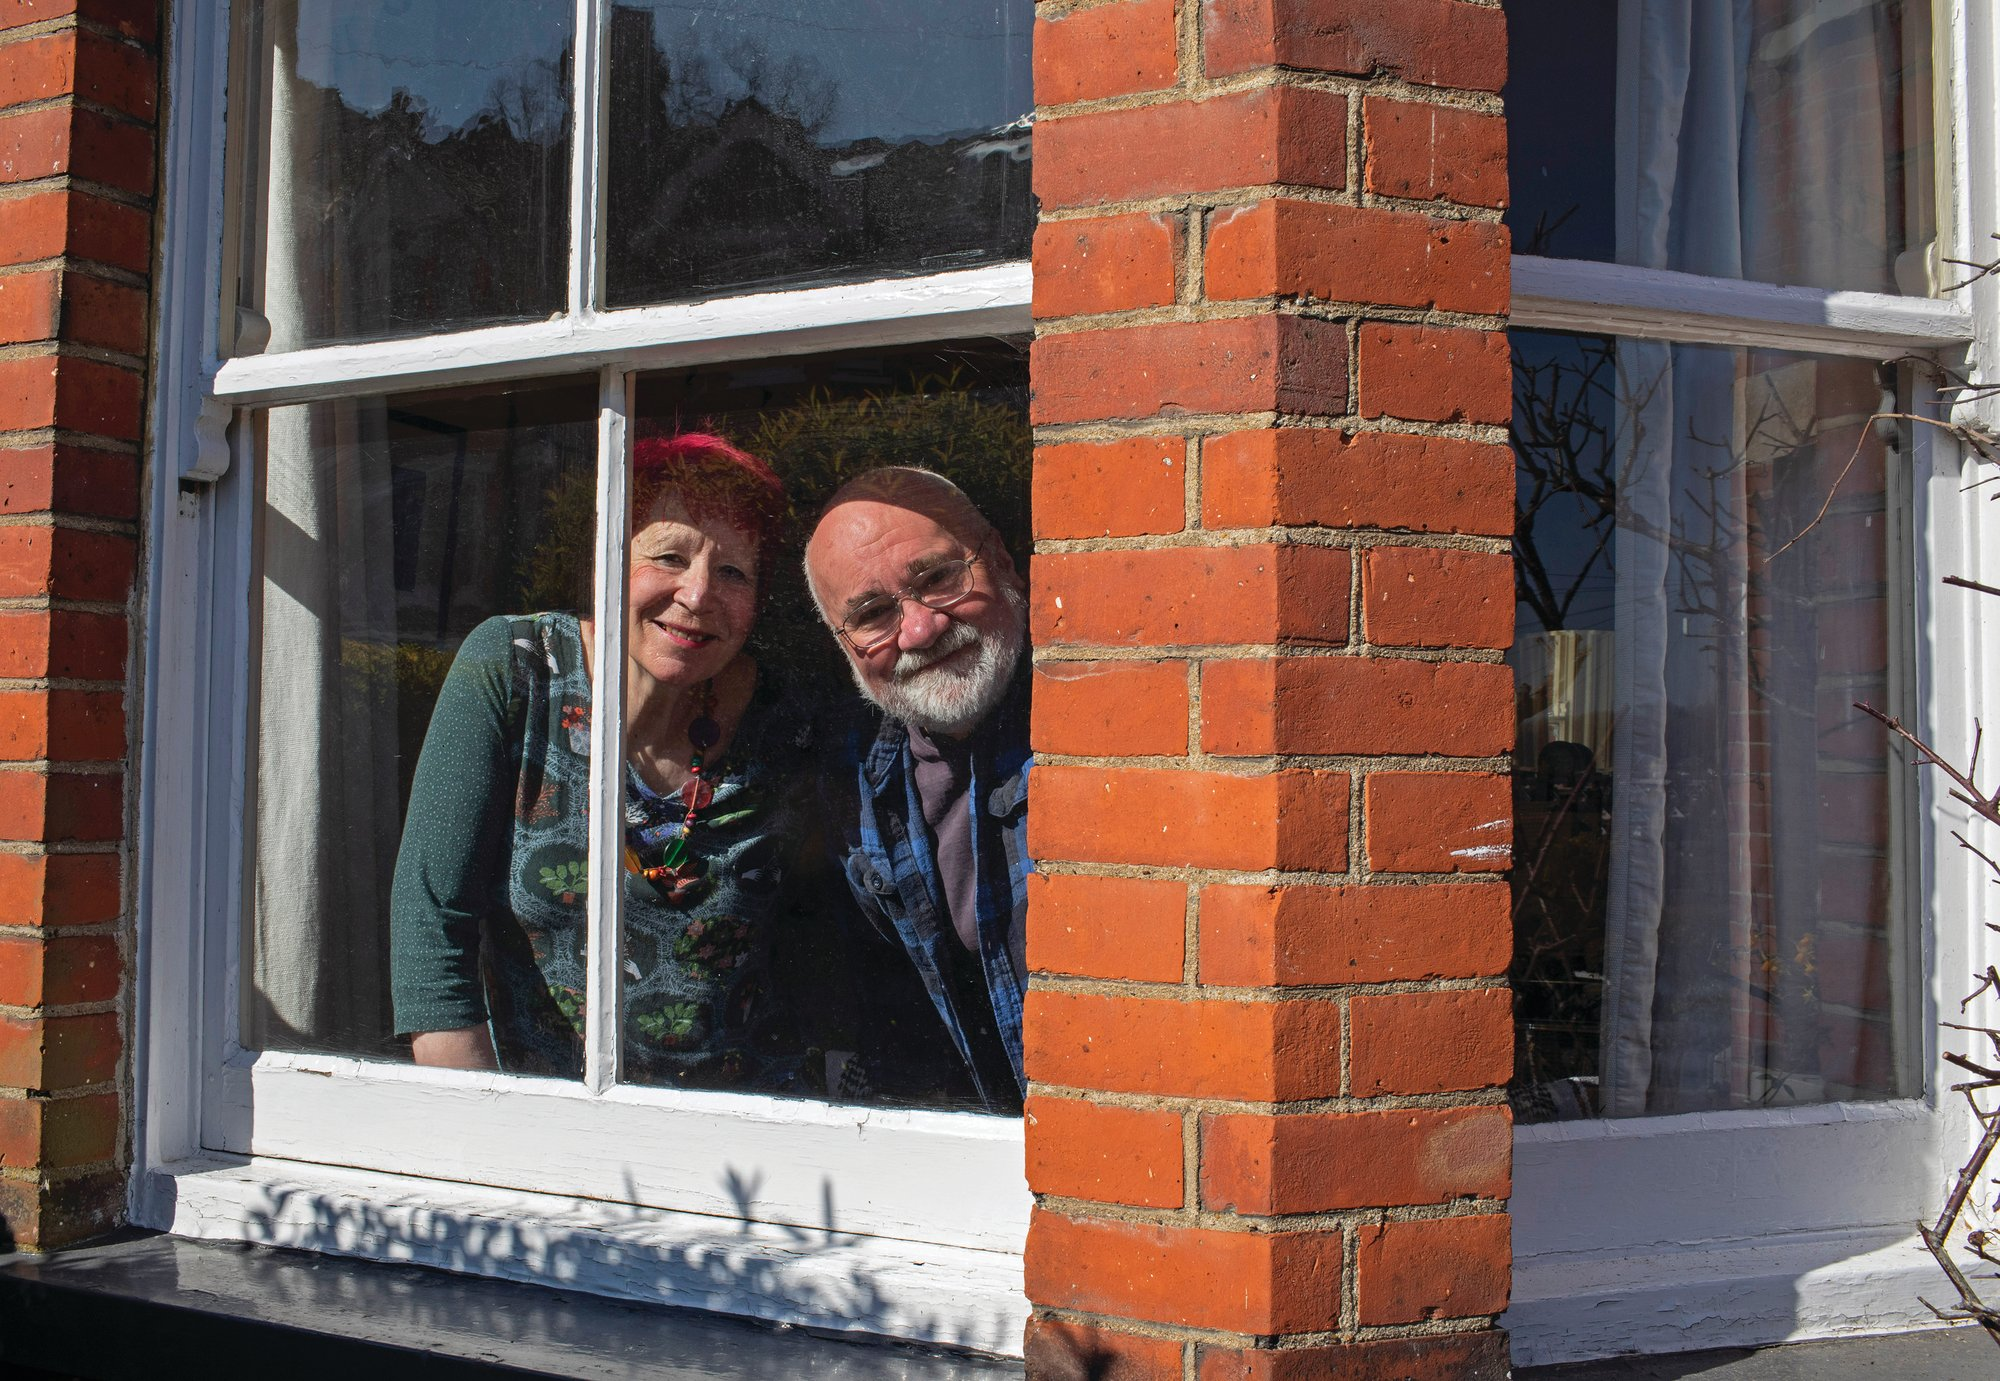 Bob and Sue Parsons look out from their window in Berkhamsted on March 26. The couple, who has lived there for 40 years, has seen changes on the street, but this is by far the strangest time they have lived through.